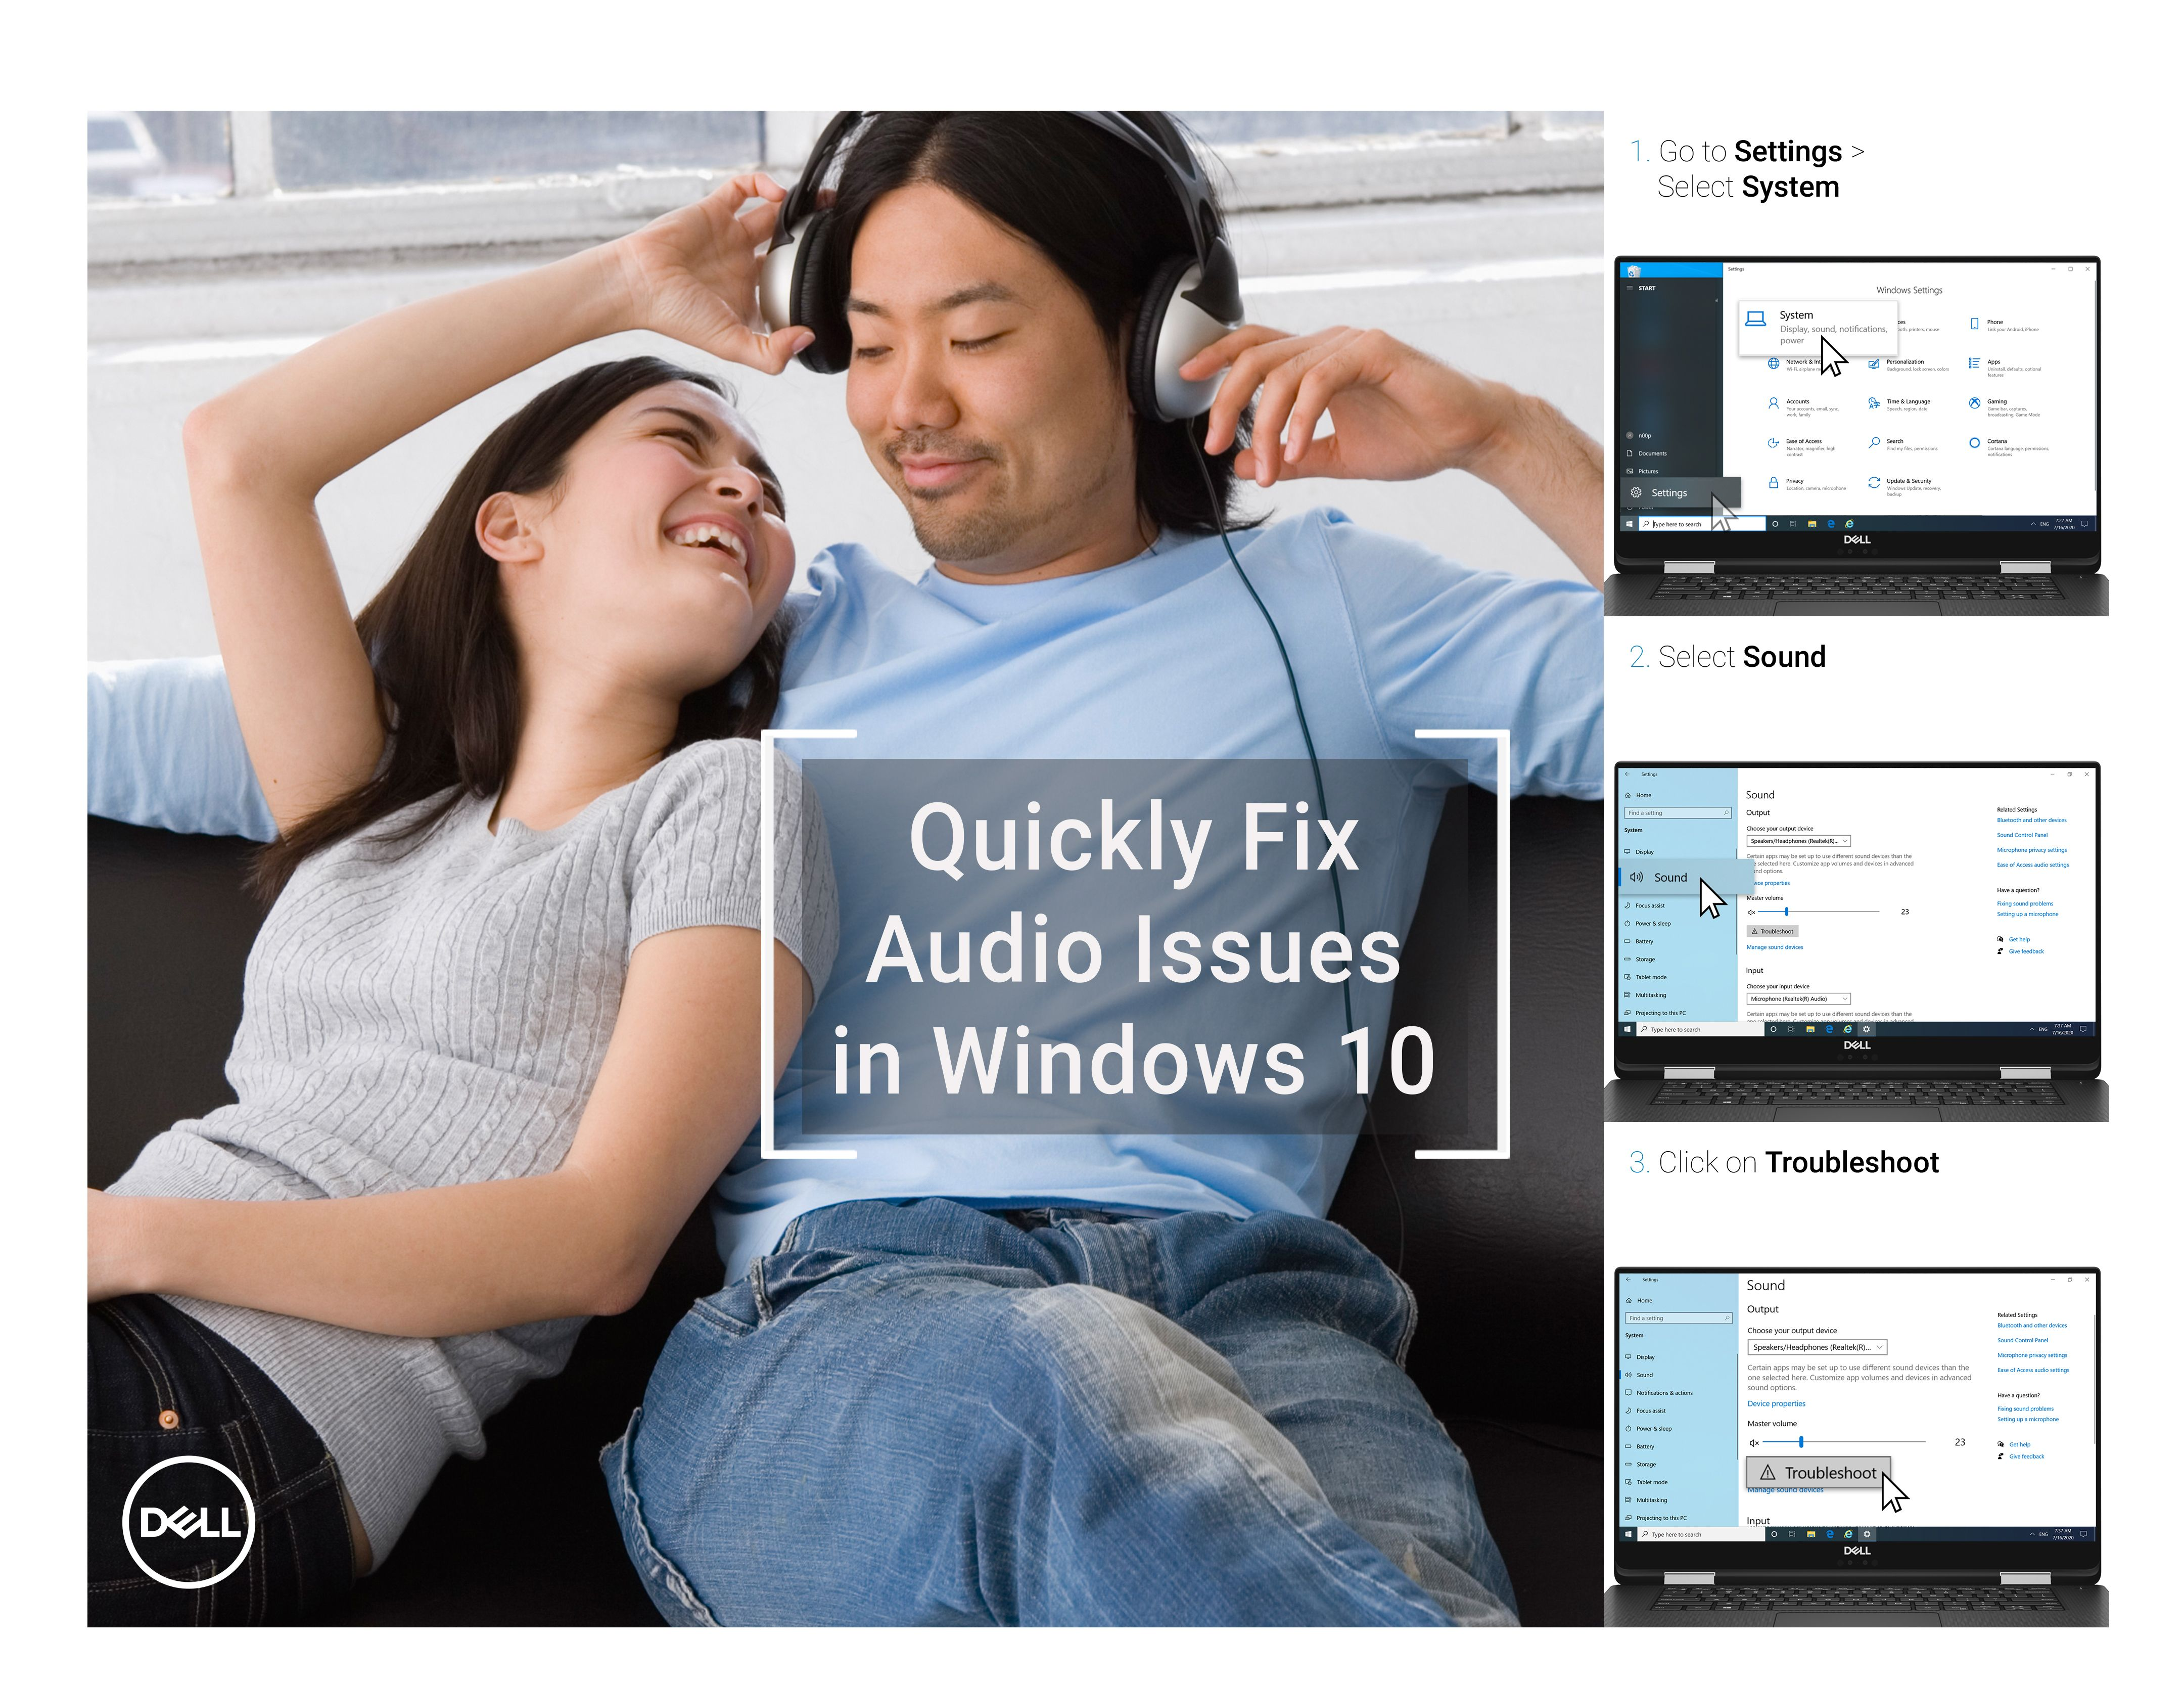 Fix Sound Problems In Windows 10 Windows 10 Mobile Review Sound